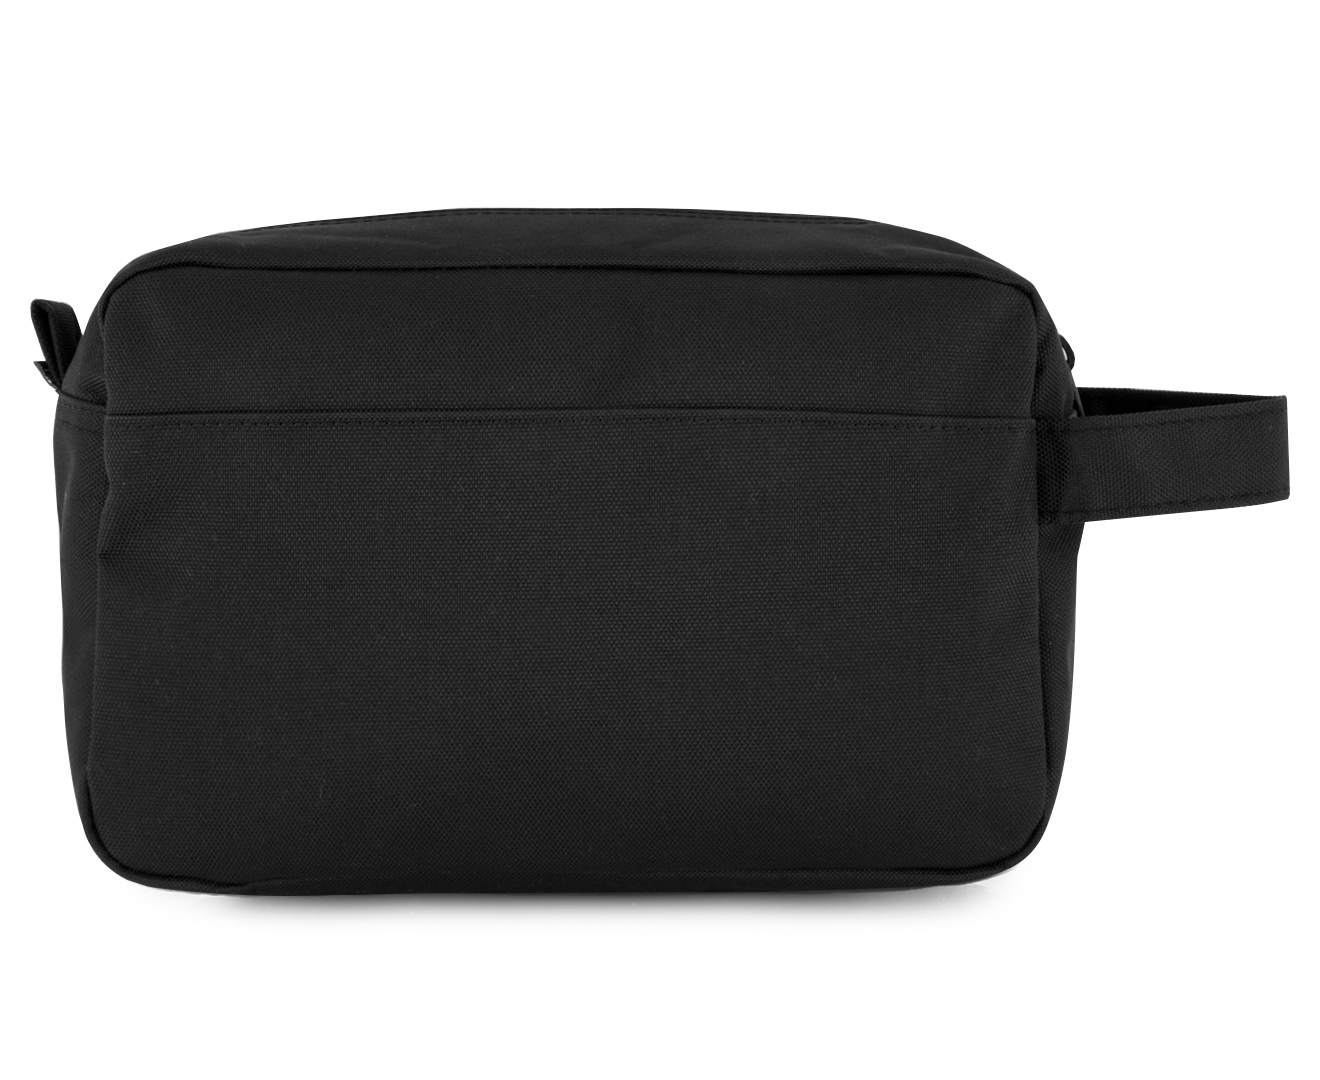 29789127bae3 Herschel Supply Co. Chapter Toiletries Bag - Black 828432007400